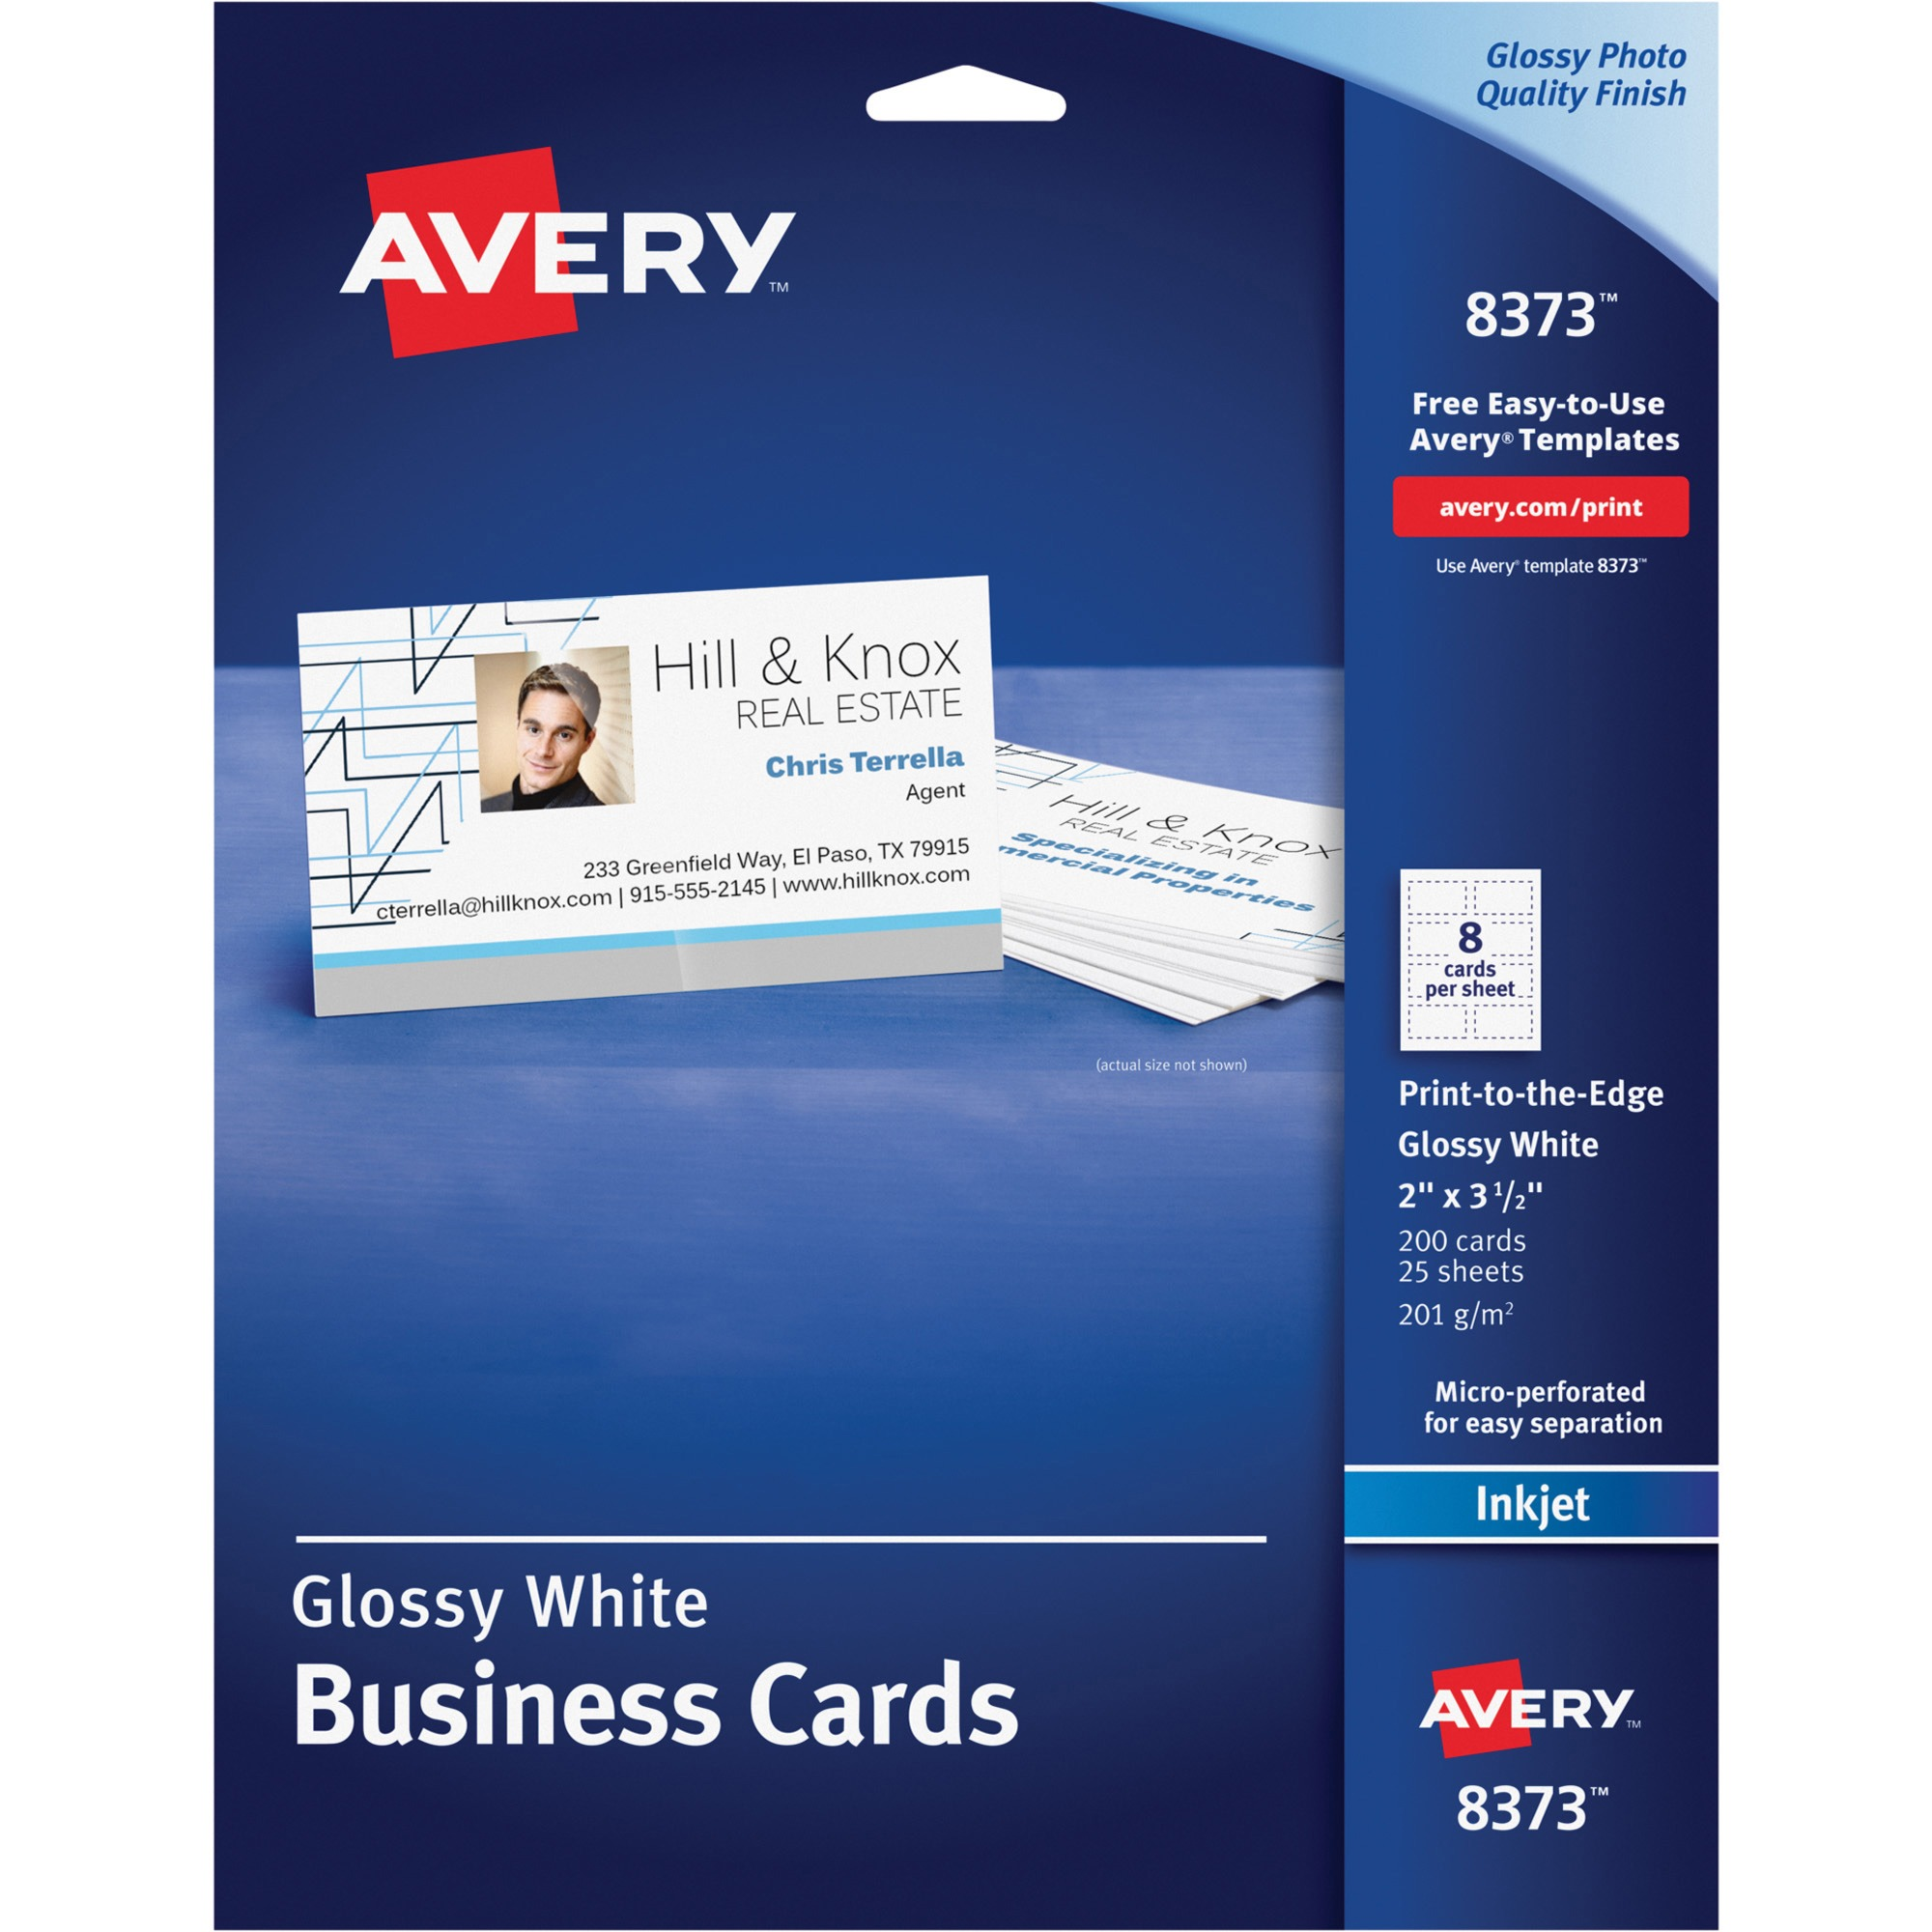 Avery Print-to-the-Edge Microperf Business Cards, Inkjet, 2x3 1/2 ...